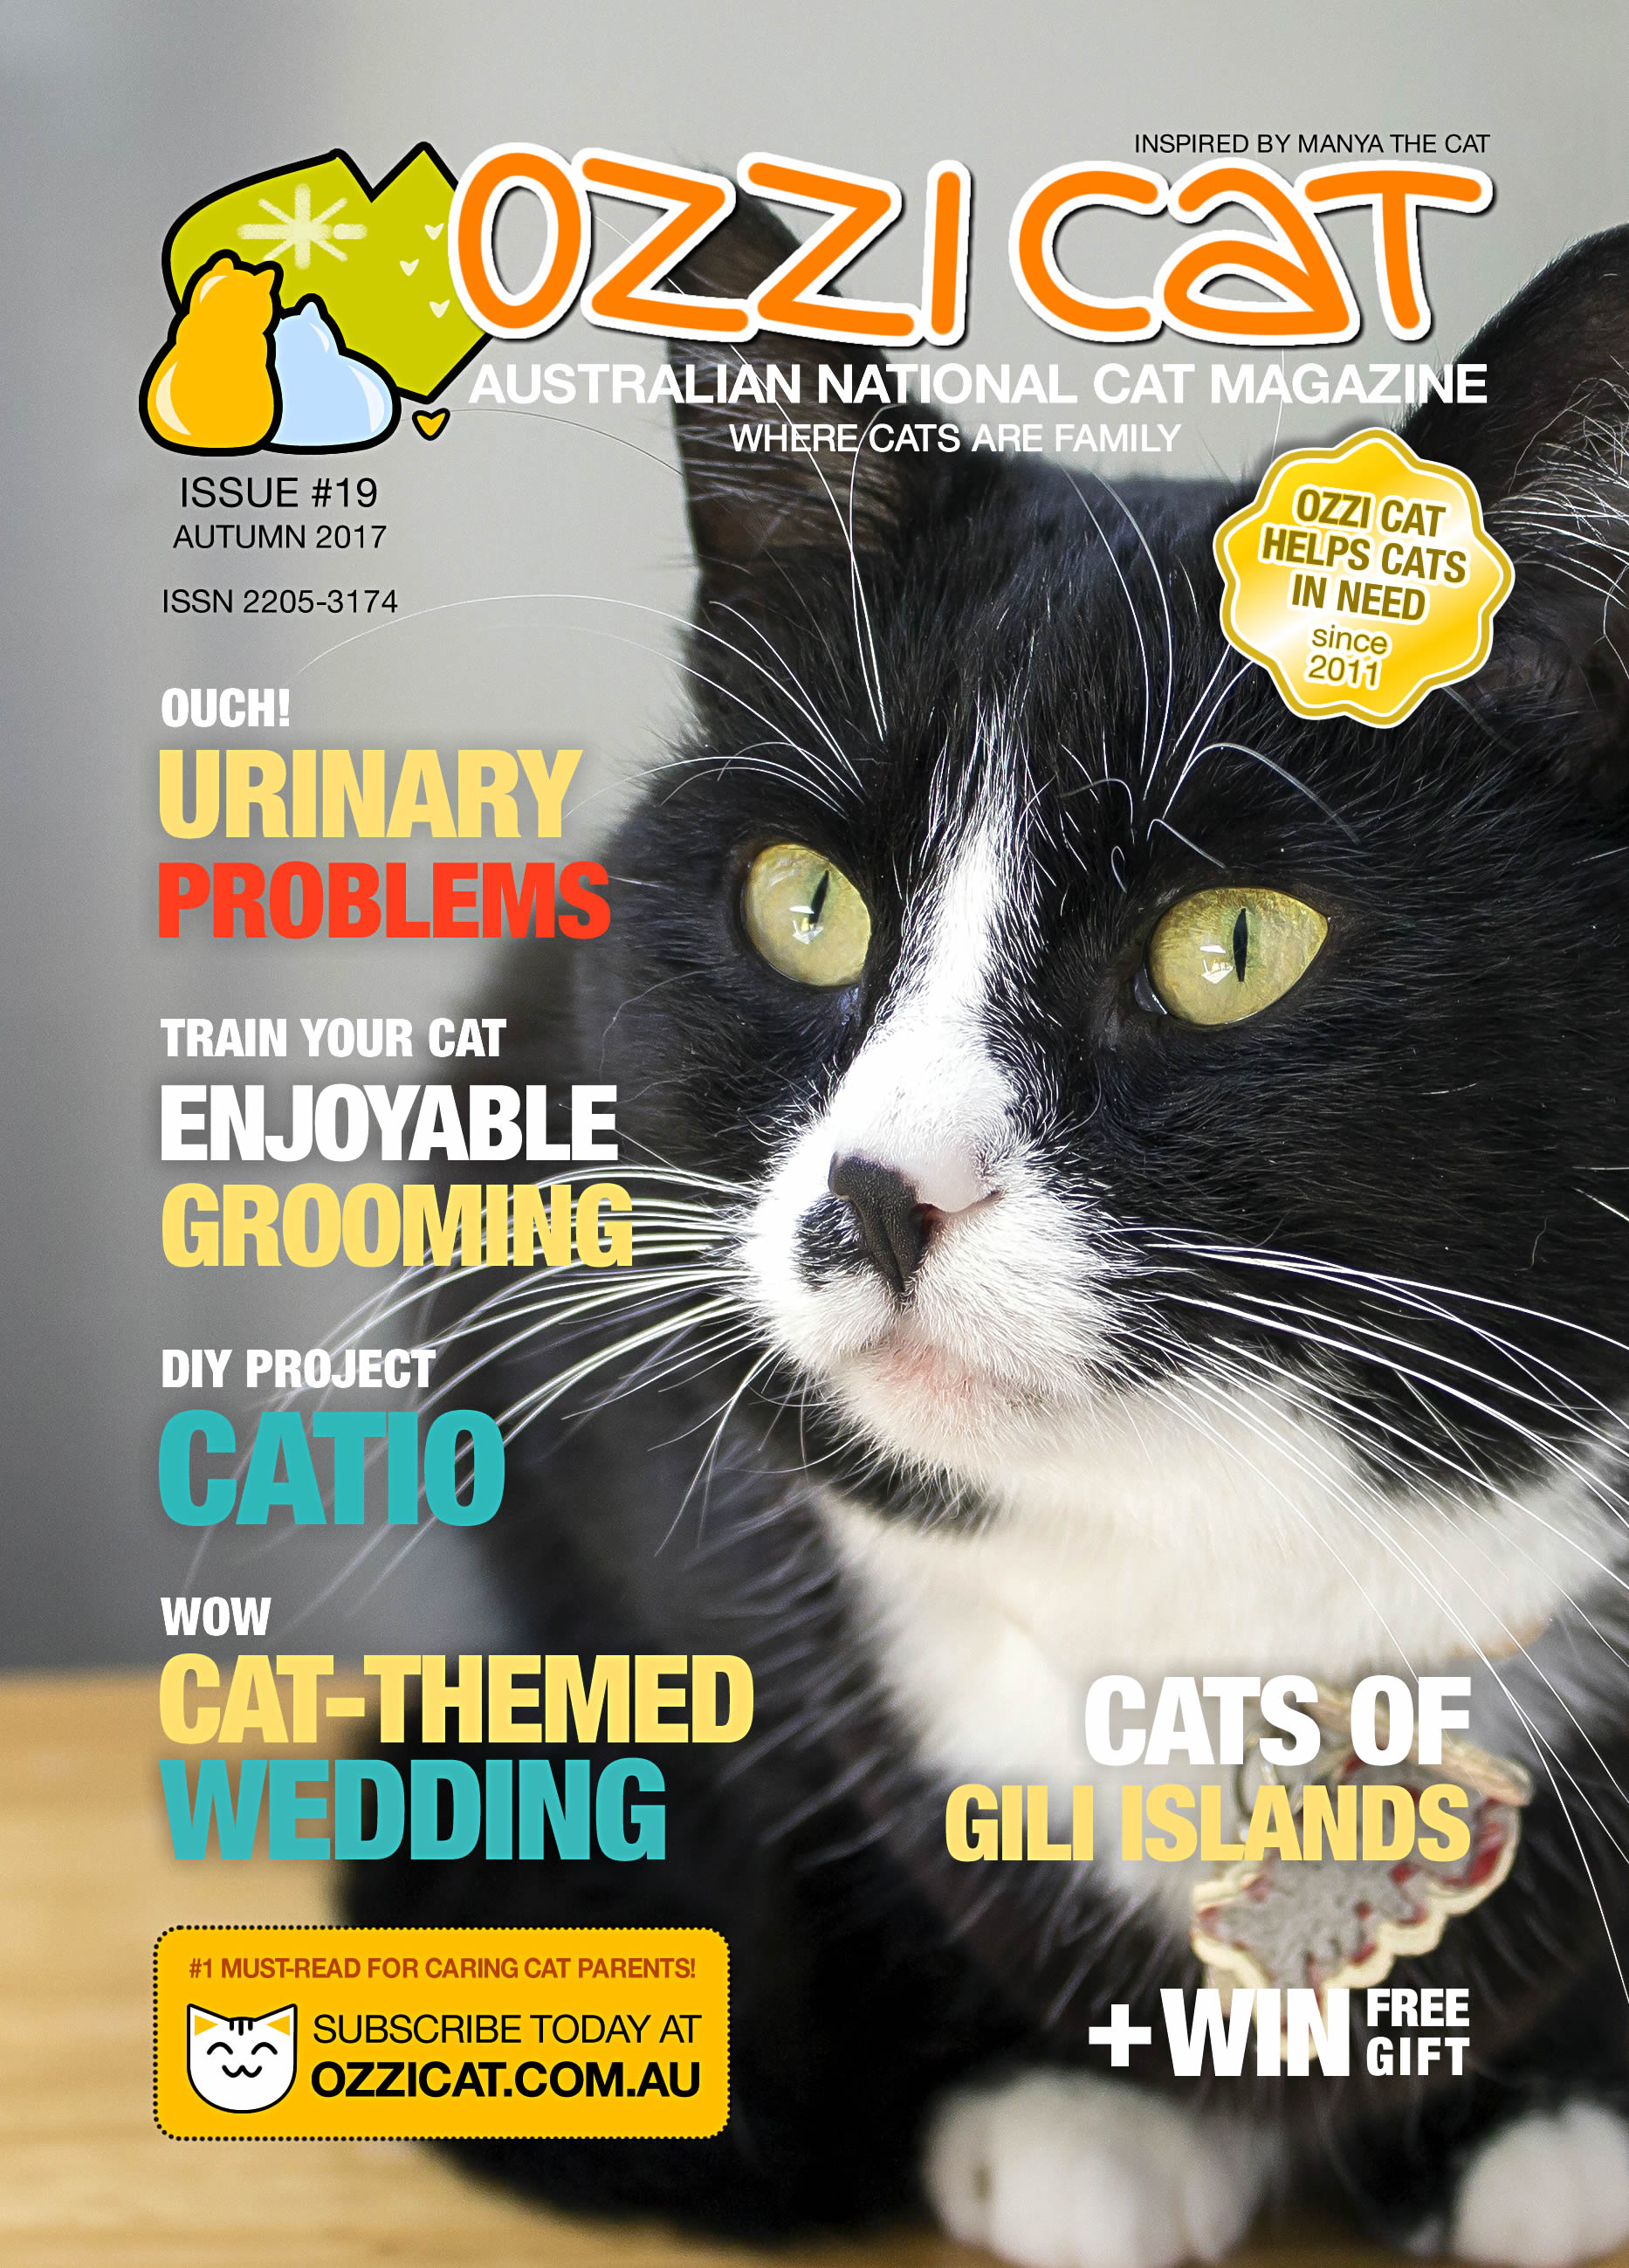 Ozzi Cat Magazine - Issue 19 - Autumn 2017